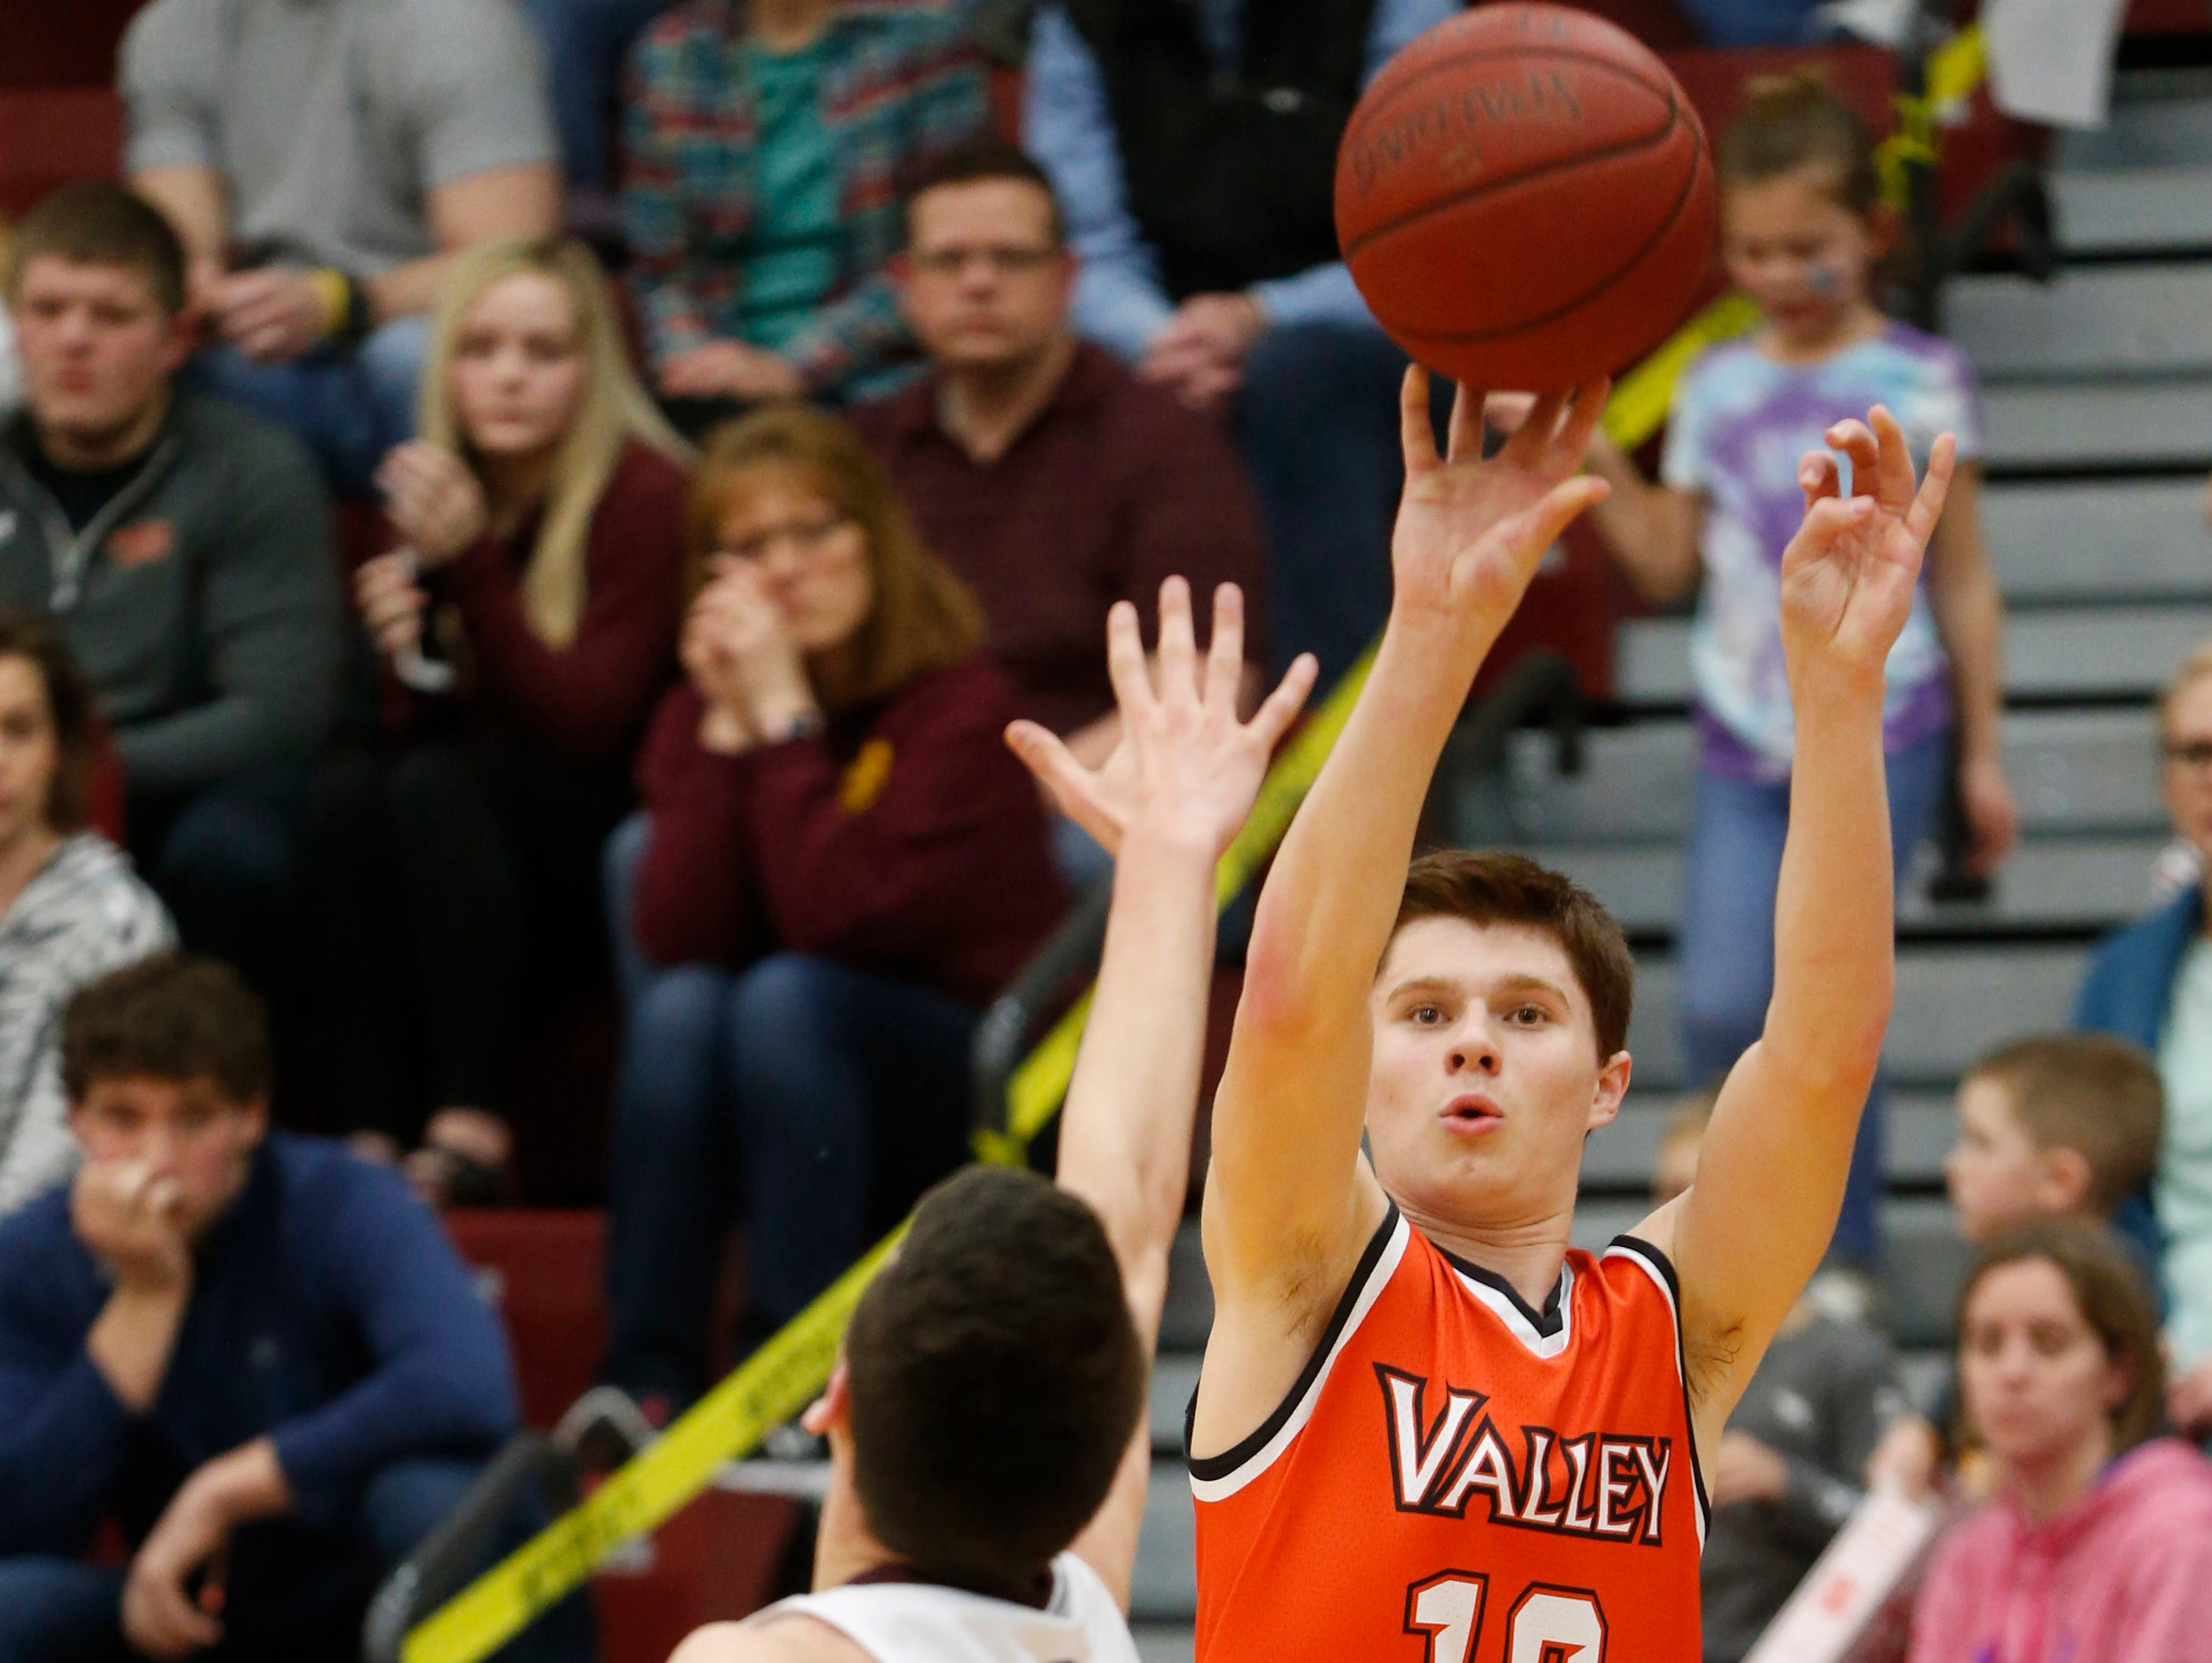 Valley senior Reese Skinner (12) shoots for three over Ankeny junior Ben Lyon (14) Friday, Feb. 10, 2017, at Ankeny High School in Ankeny.